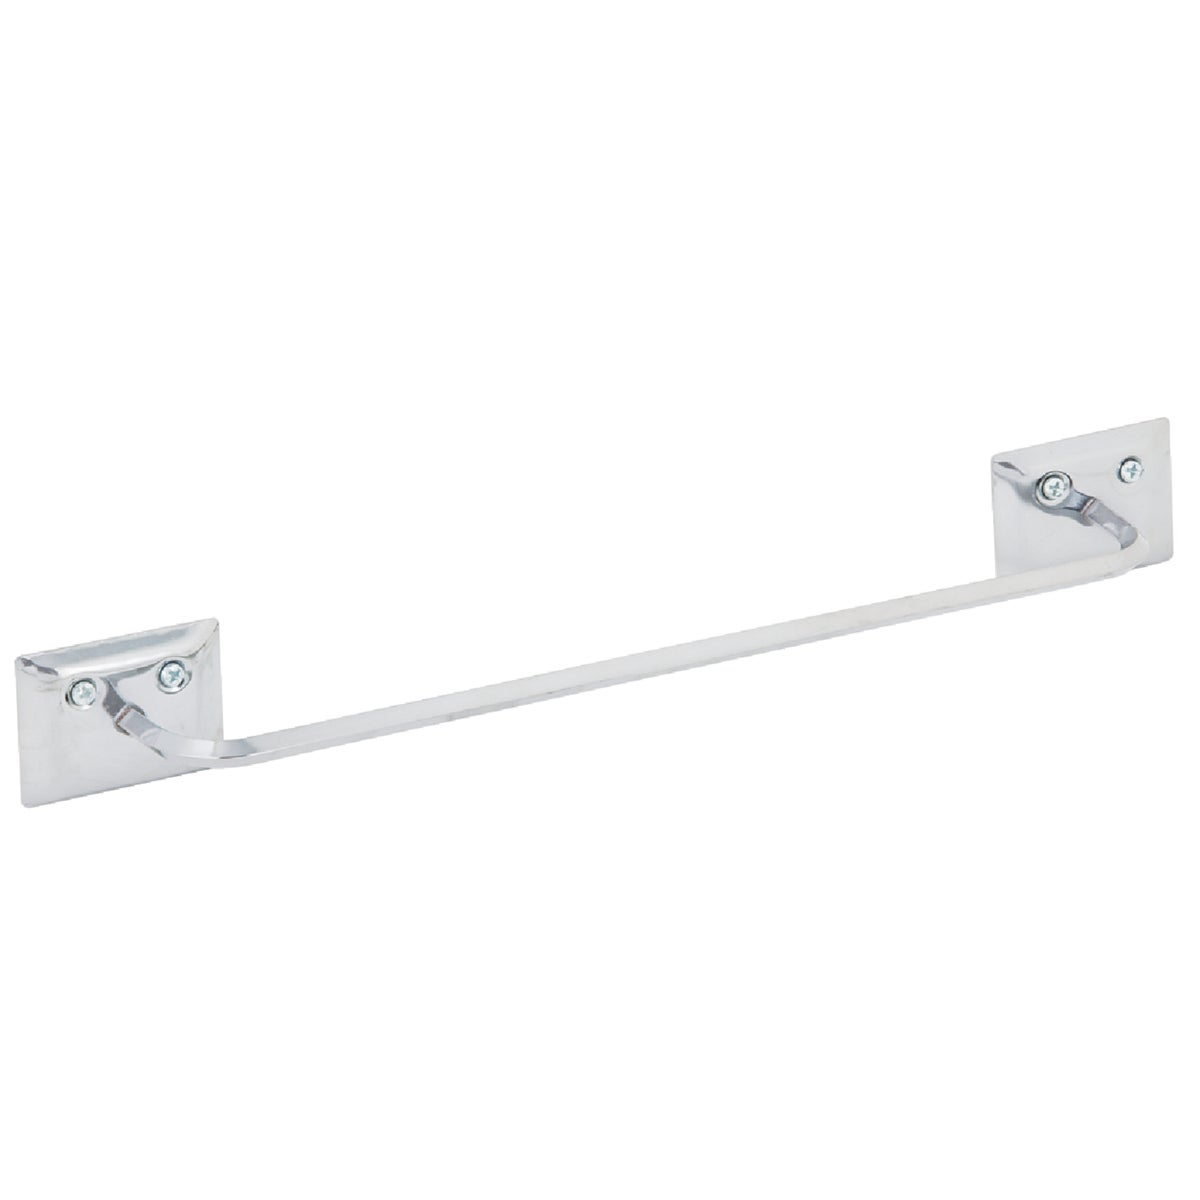 "12"" CHROME TOWEL BAR - 38120 by Decko Bath"